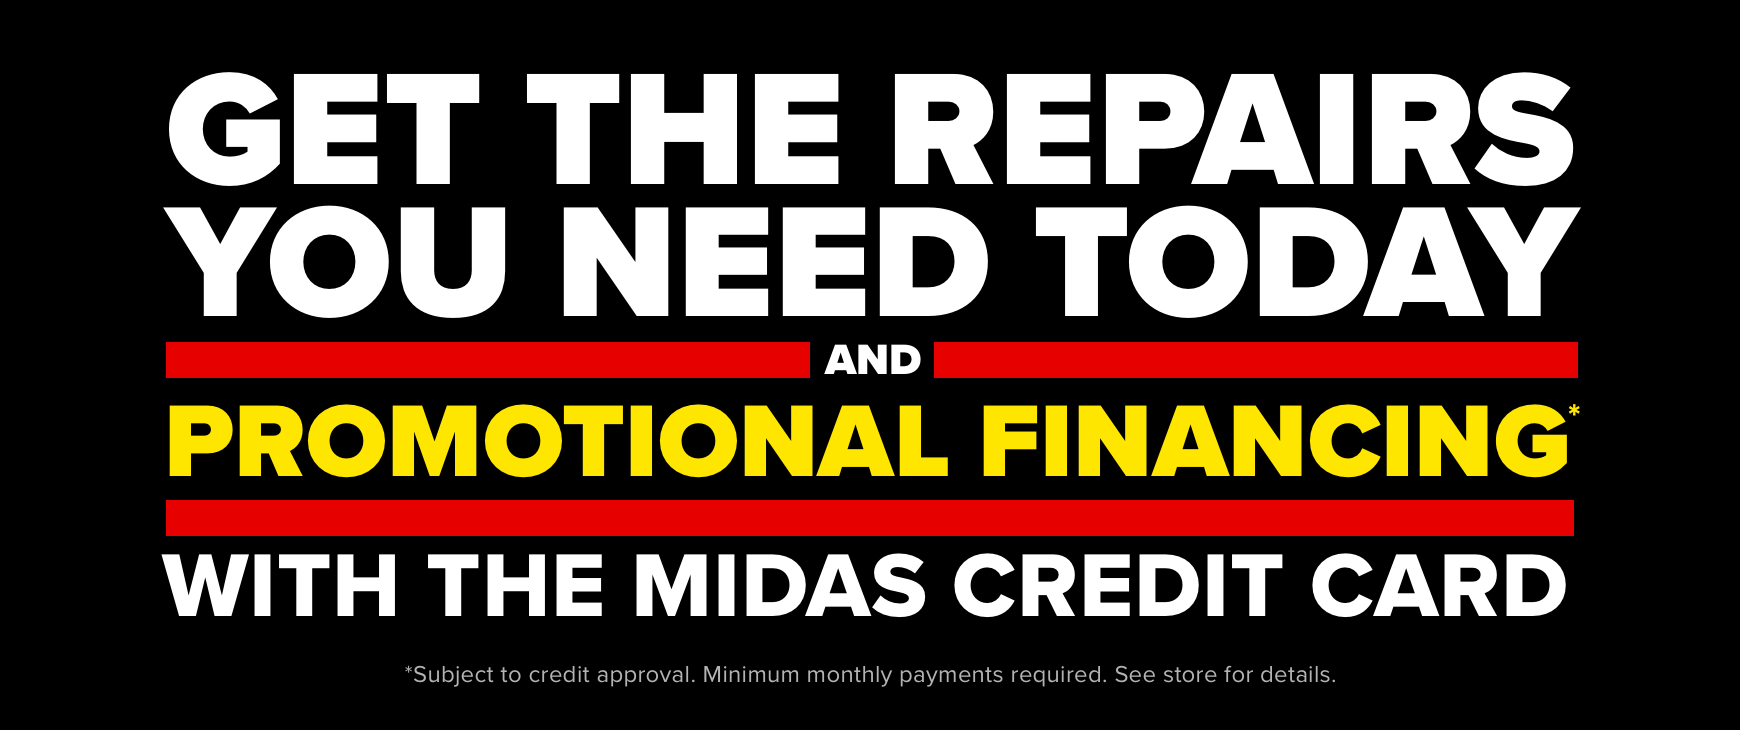 Promotional Financing with the Midas Credit Card